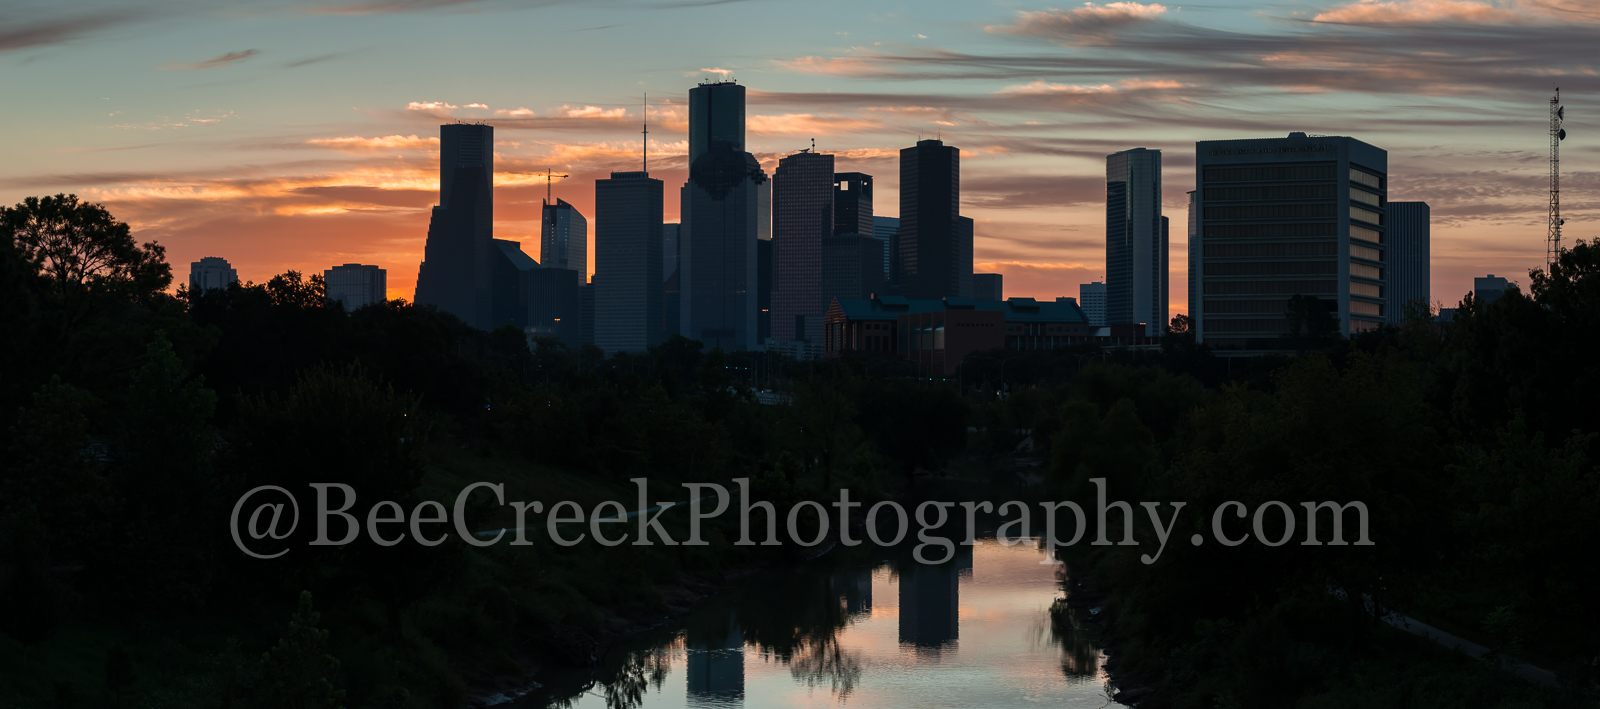 Houston, skyline, skylines, pano, panorama, cityscape, cityscapes, buildings, high rise, bayou, buffalo bayou, water, reflections, sunrise, colors, pinks, oranges, skies,, photo